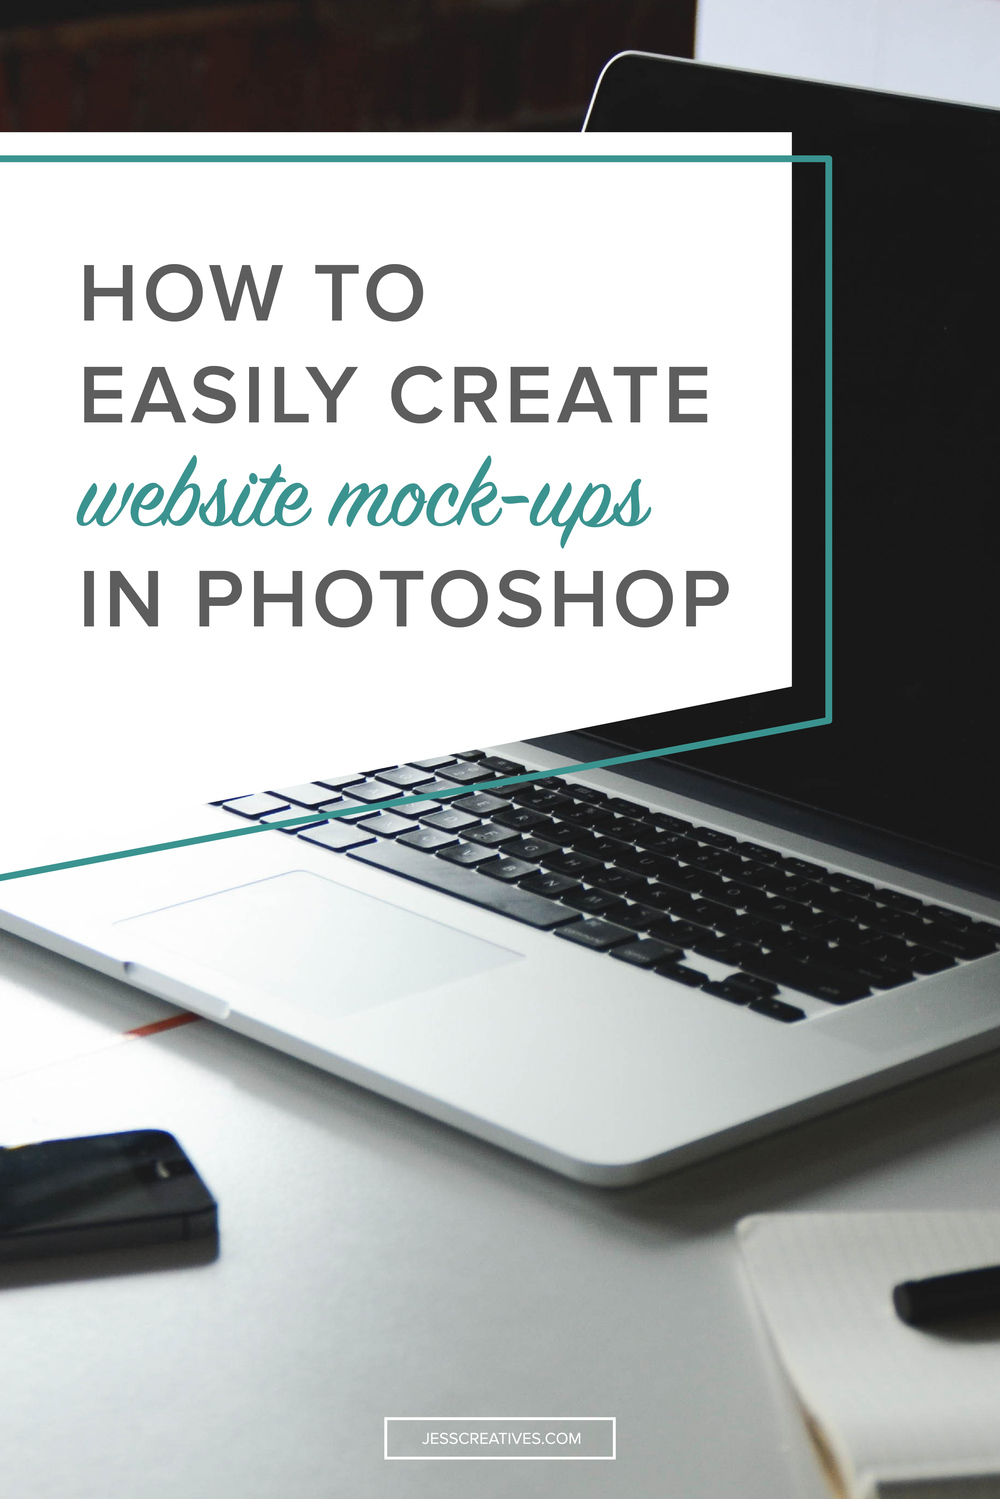 In a recent project with one of my clients, I needed to make a mockup of their website on different devices. I could have gone about this the lengthy way, but there's a much simpler way -- and it only takes three easy steps.